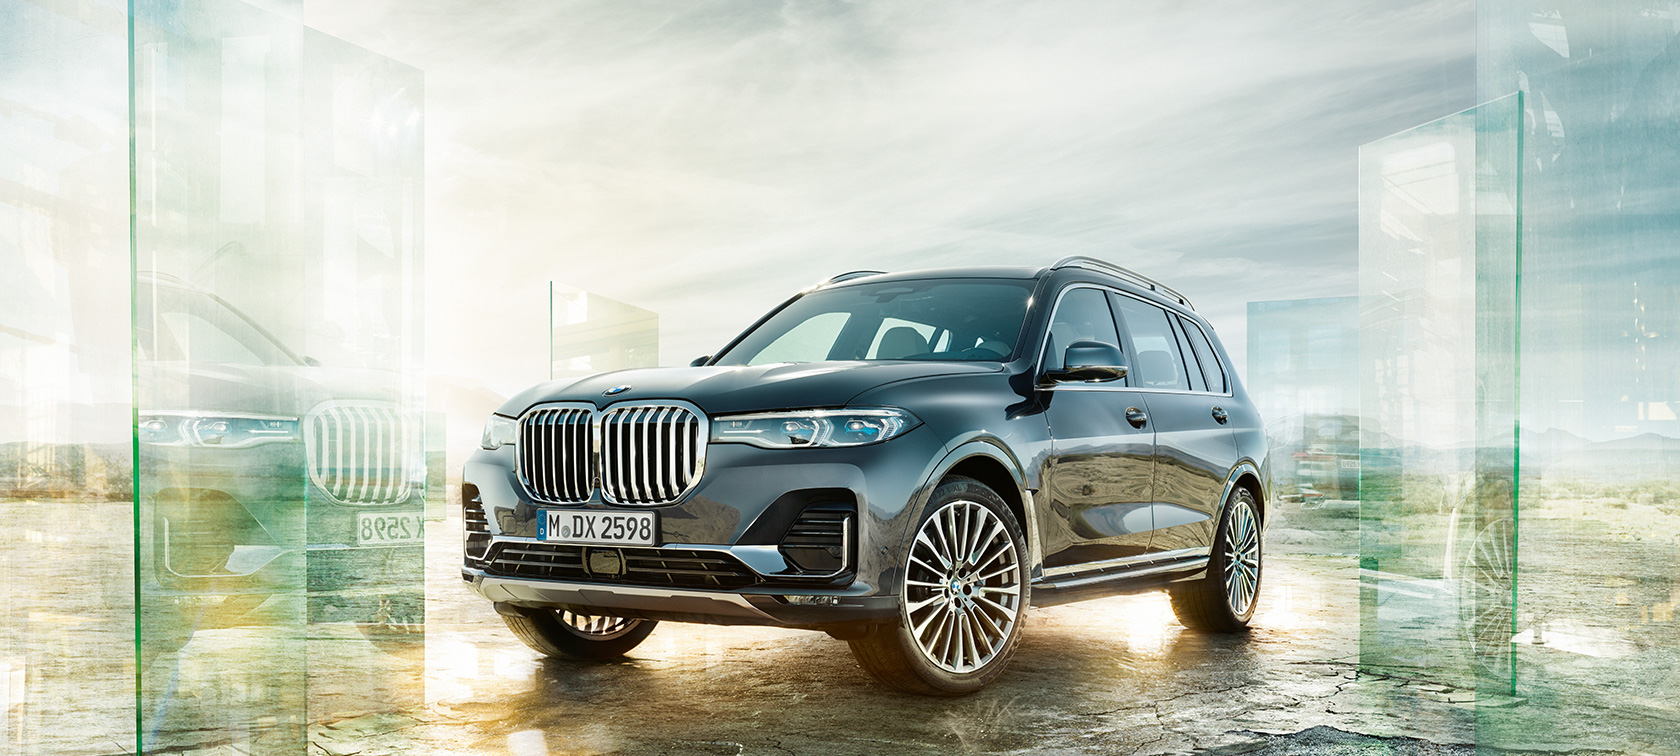 BMW X7, three-quarter front view